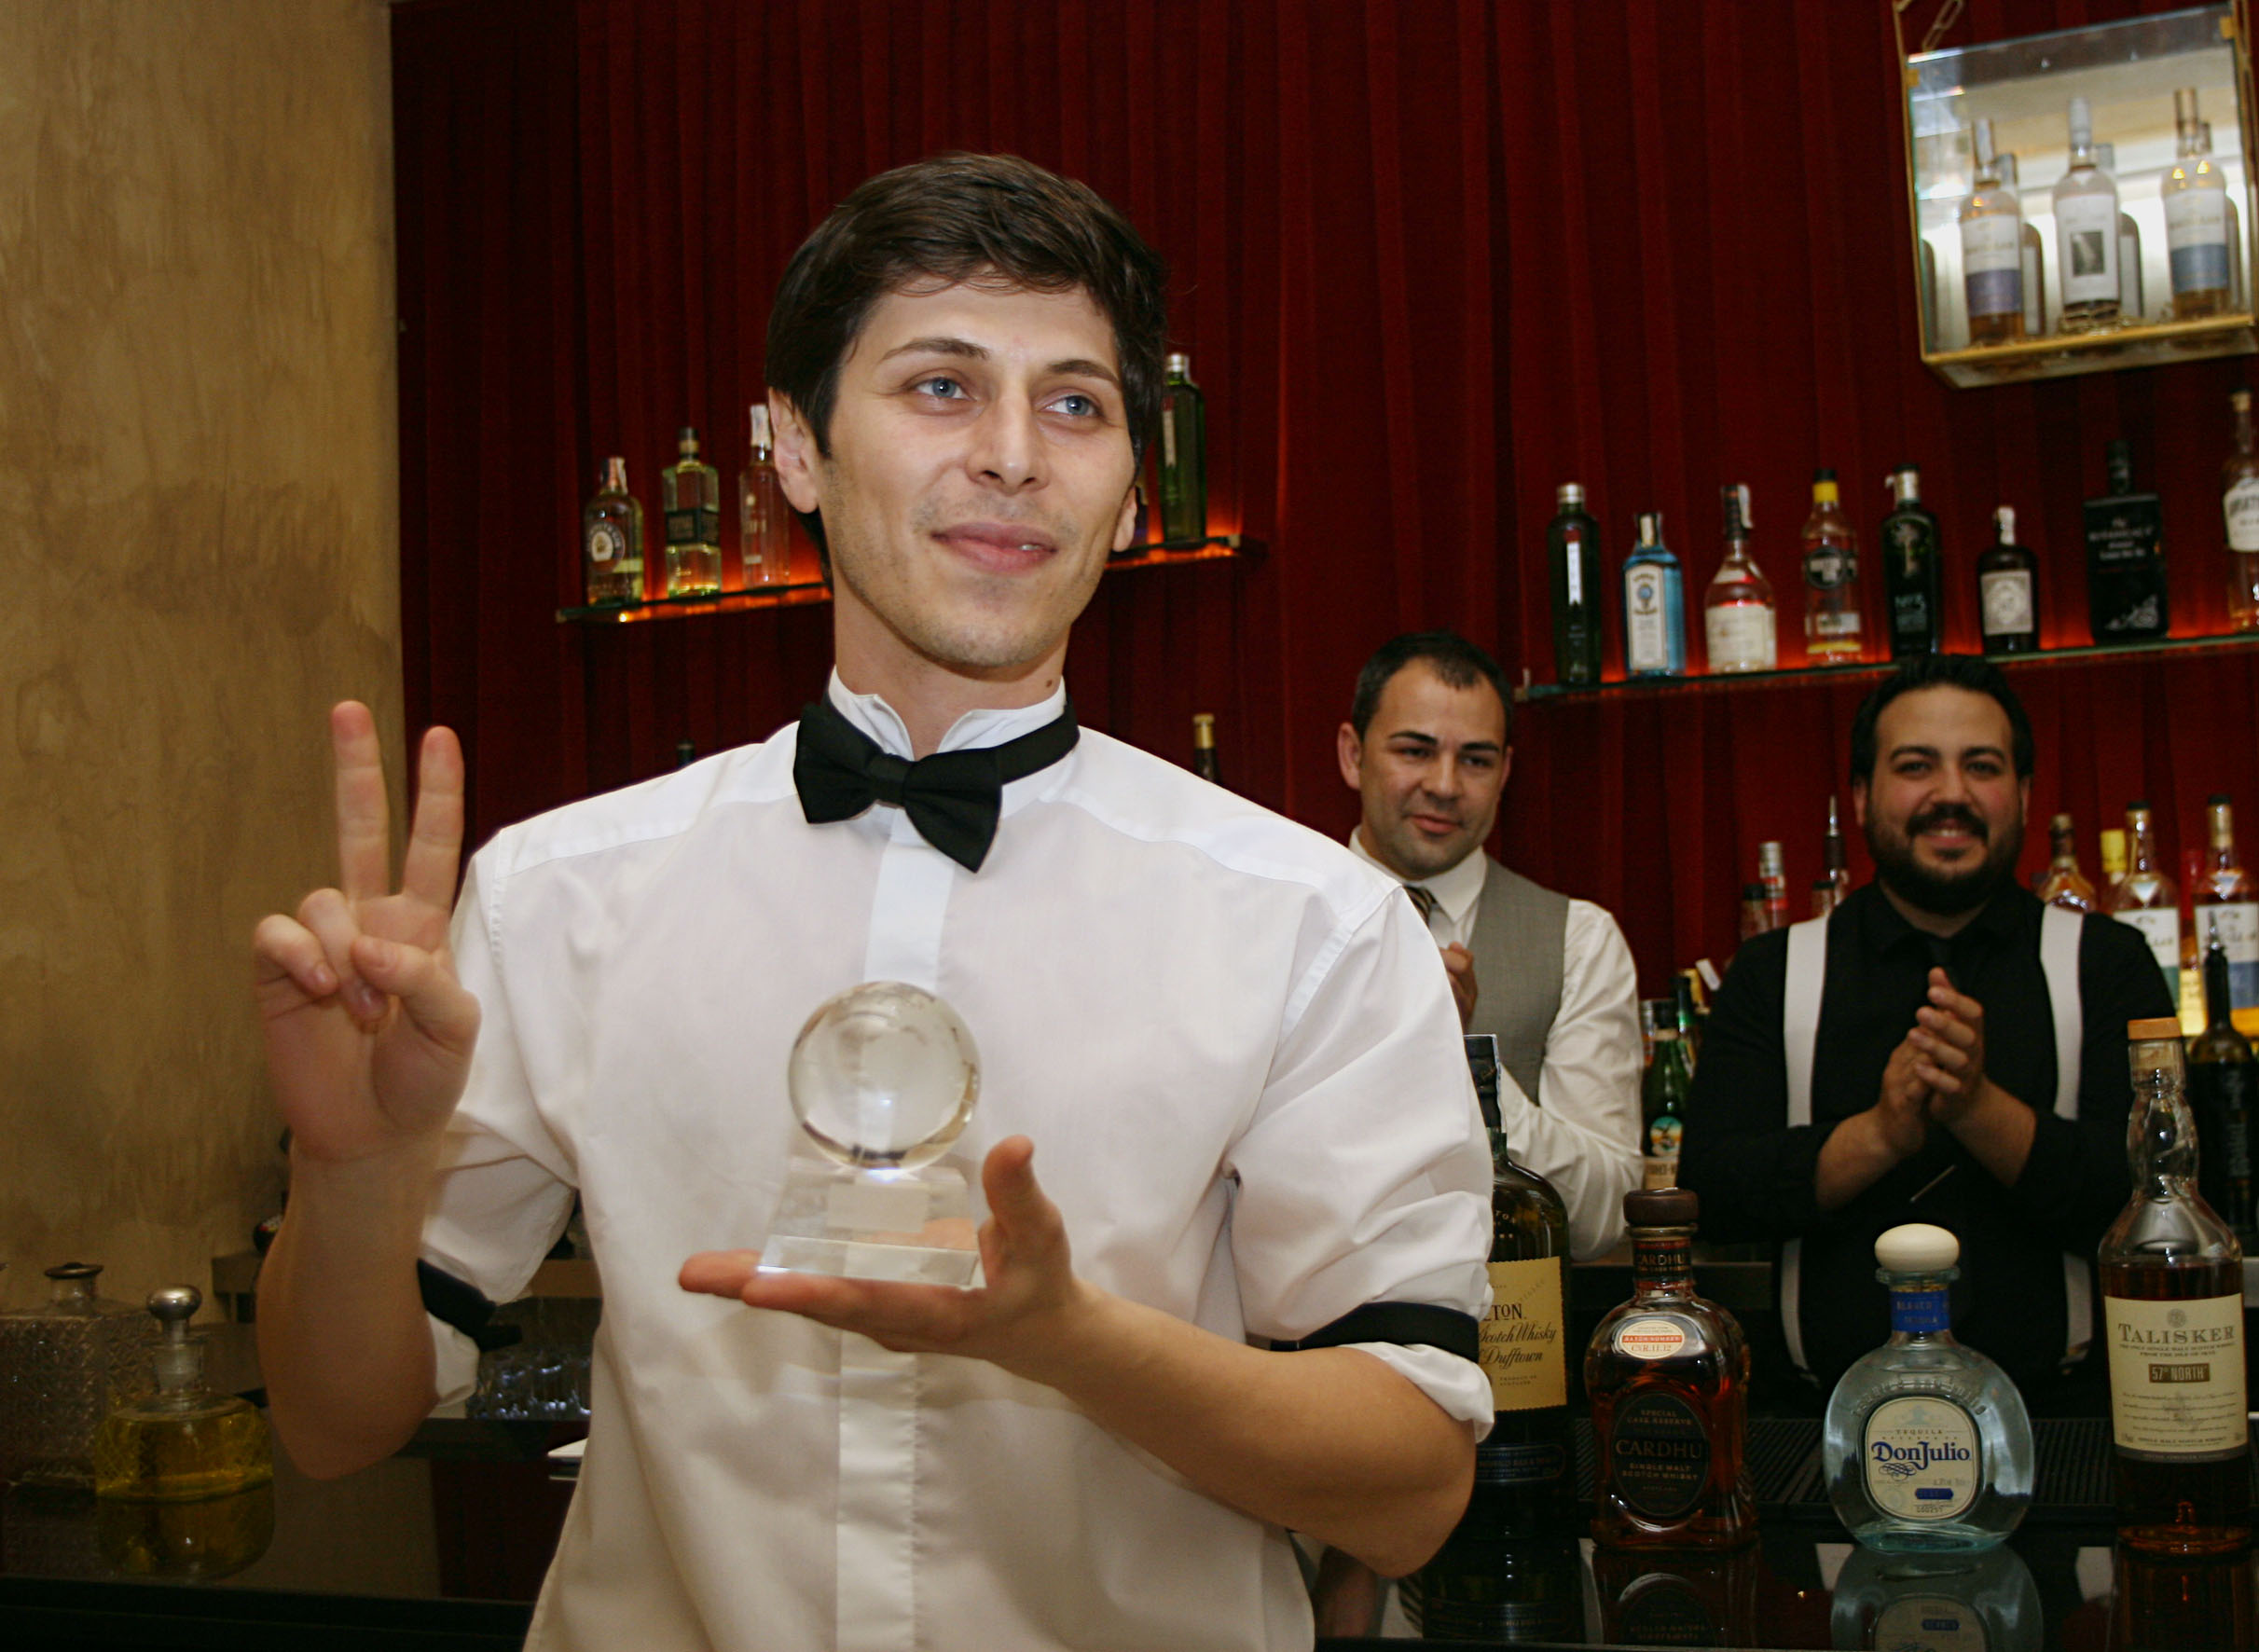 Nicky Neykov, ganador de la final regional de la World Class Competition